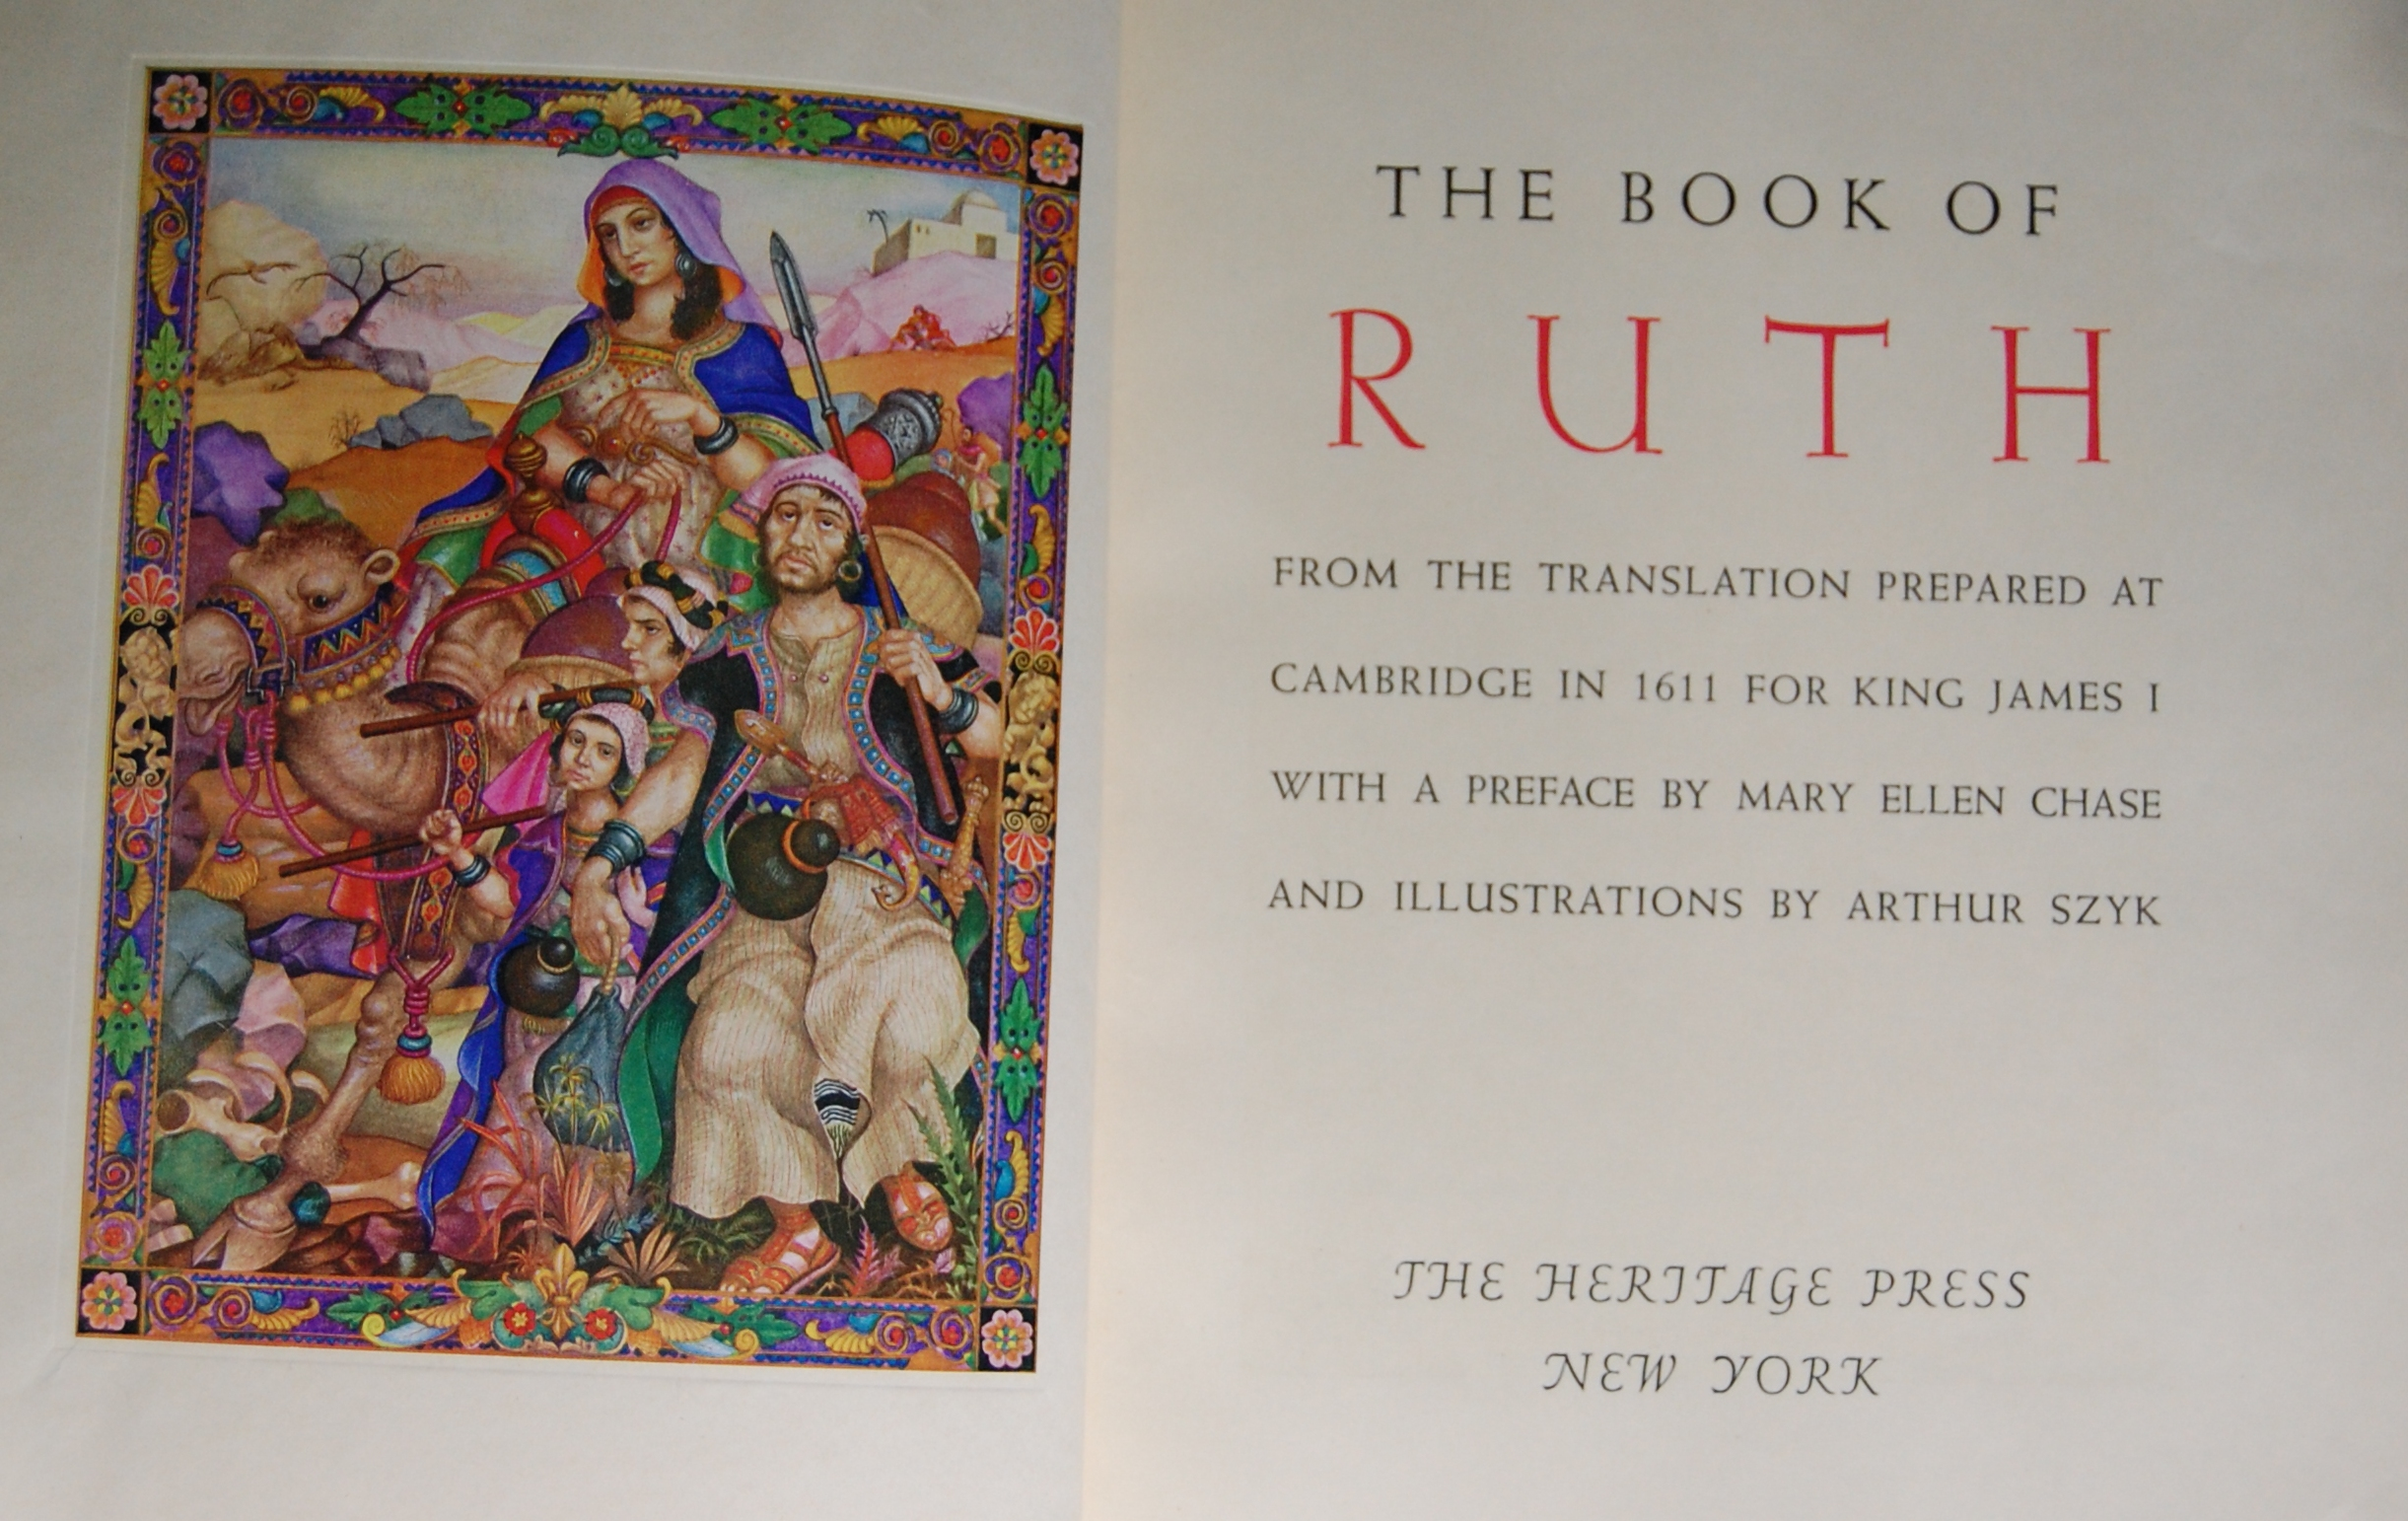 the book of ruth The book of ruth ruth i 1 now it carne to pass in the days when the judges ruled, that there was a famine in the land and a certain man of bethlehem-judah went to sojourn in the country of moab, he, and his wife, and his two sons.